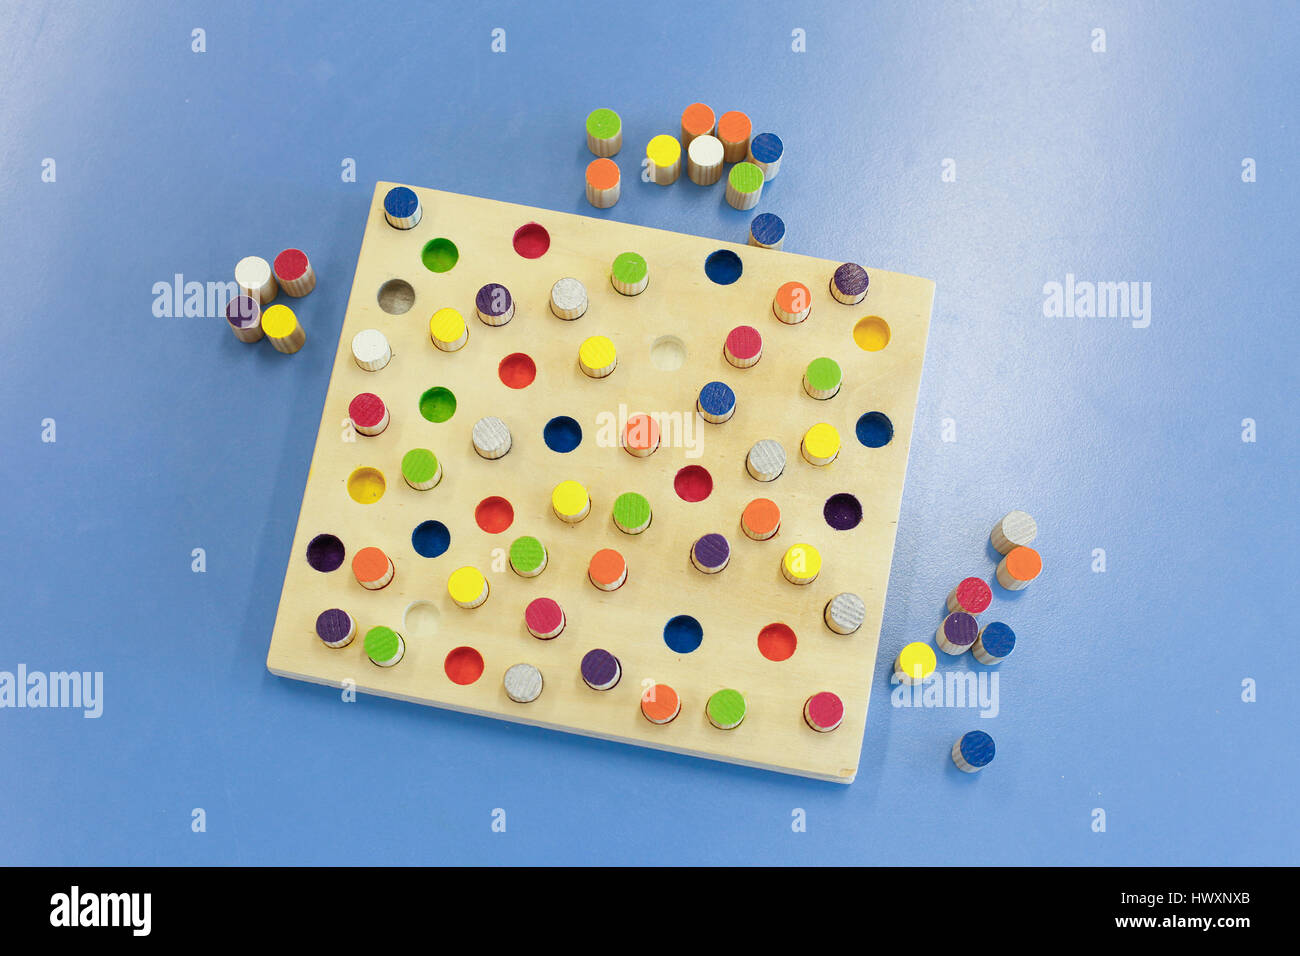 Do it yourself educational wooden colorful game made for stacking do it yourself educational wooden colorful game made for stacking arranging and building learning through experience concept creative playing and solutioingenieria Choice Image